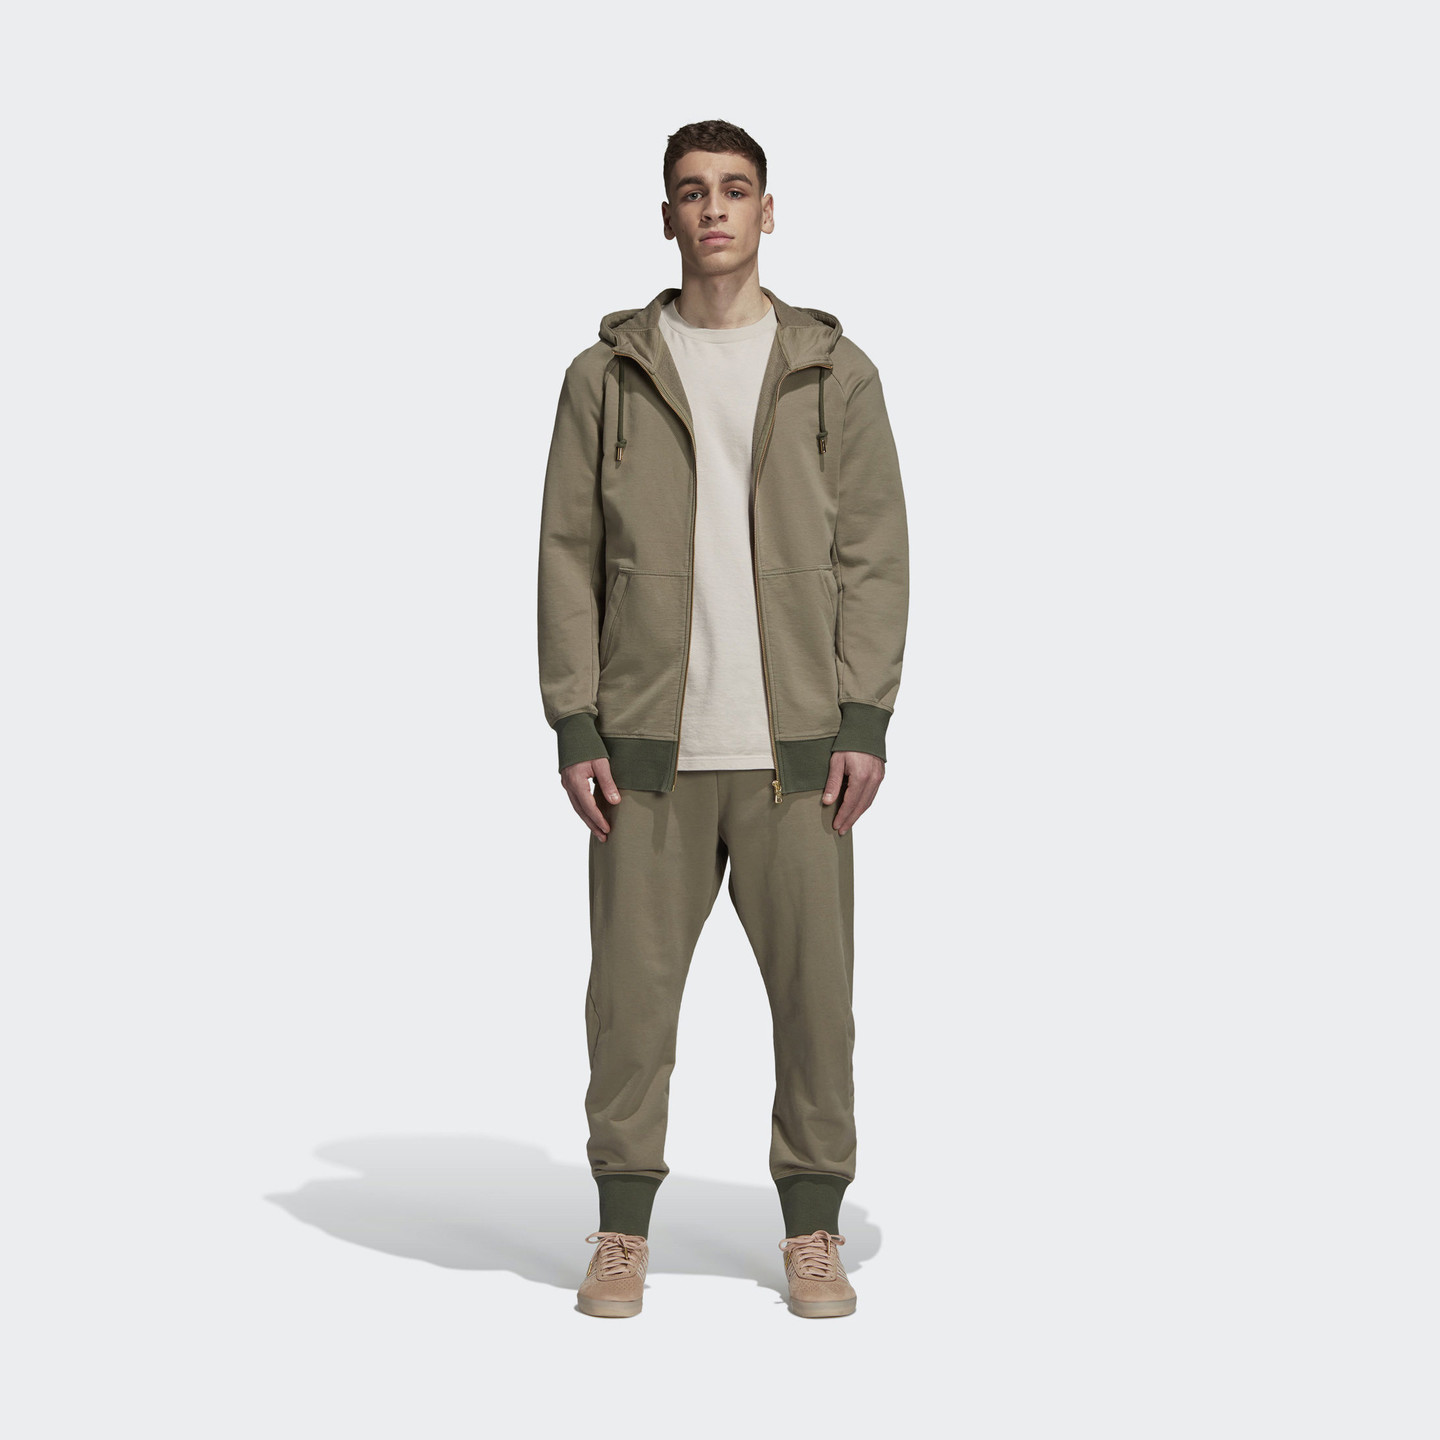 Adidas XbyO x Oyster Holdings Sweatpants Trace Cargo / Base Green / Metallic Gold CW0759